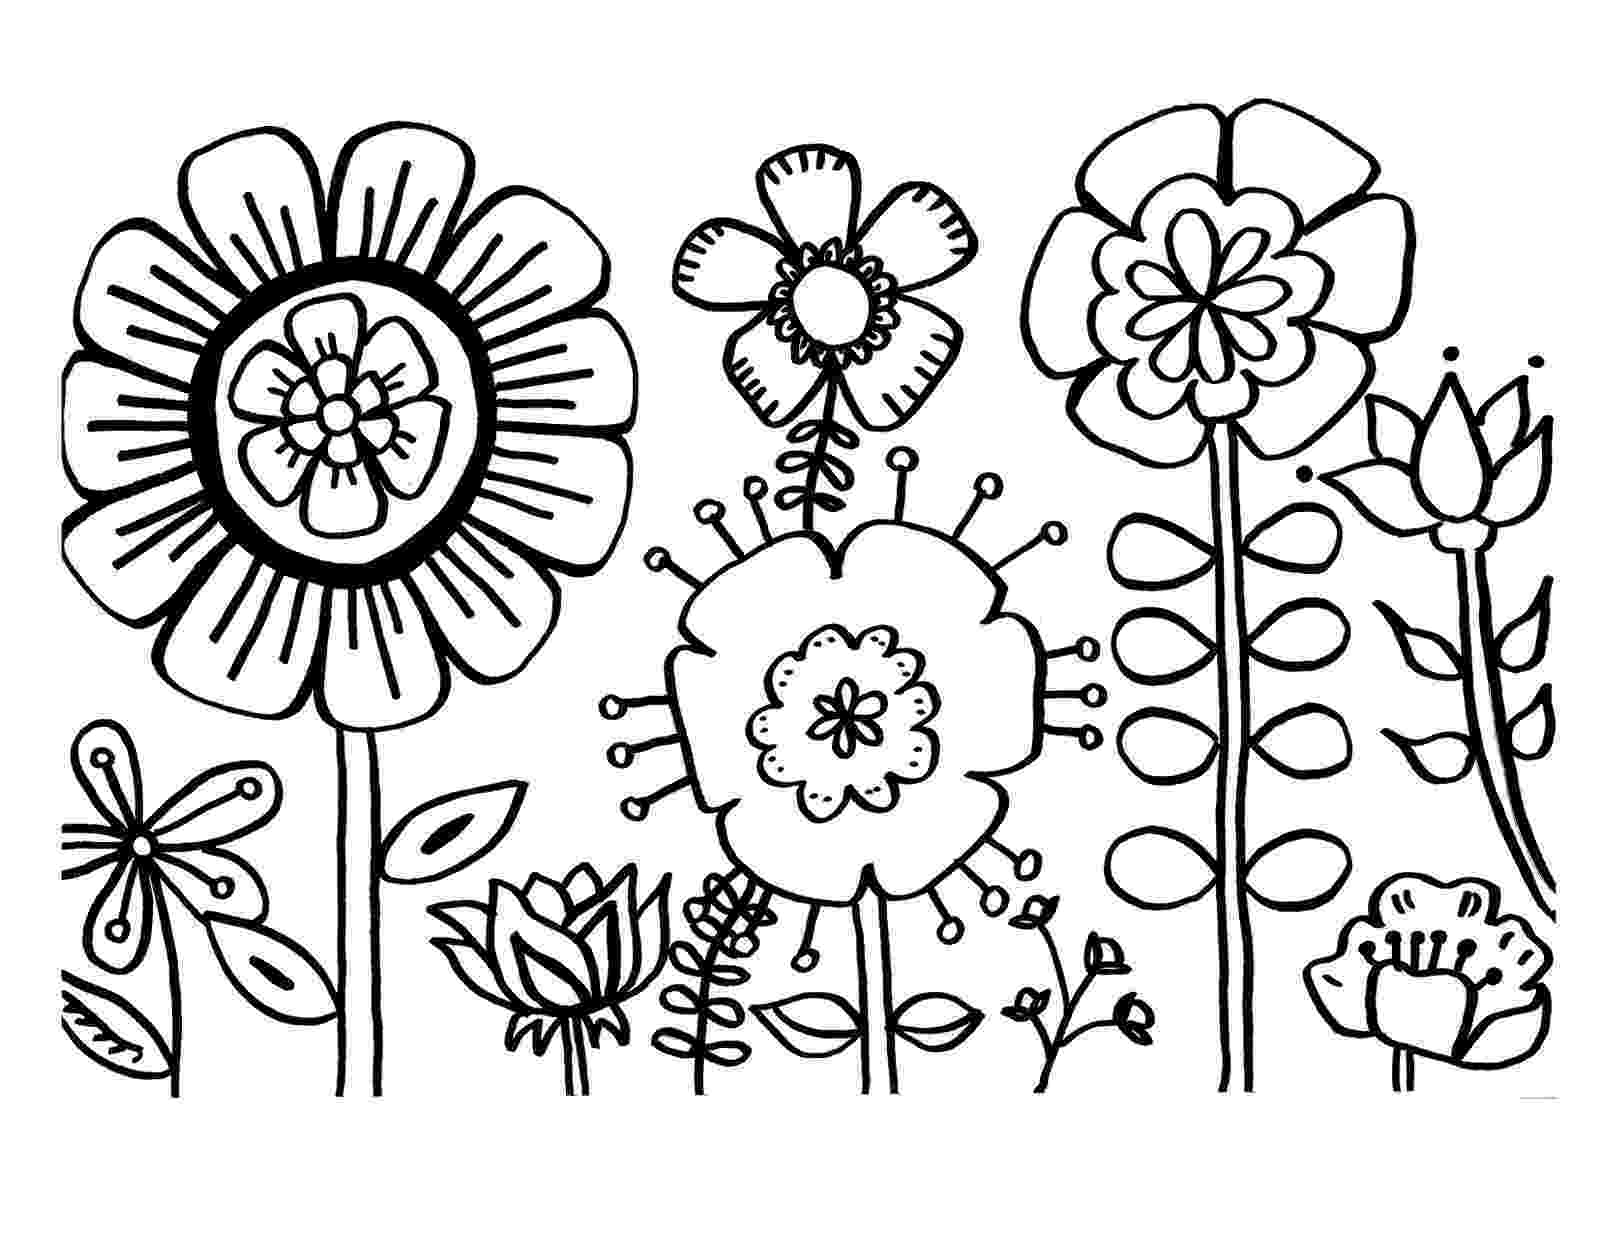 flowers coloring pages printable free printable flower coloring pages for kids best coloring pages printable flowers